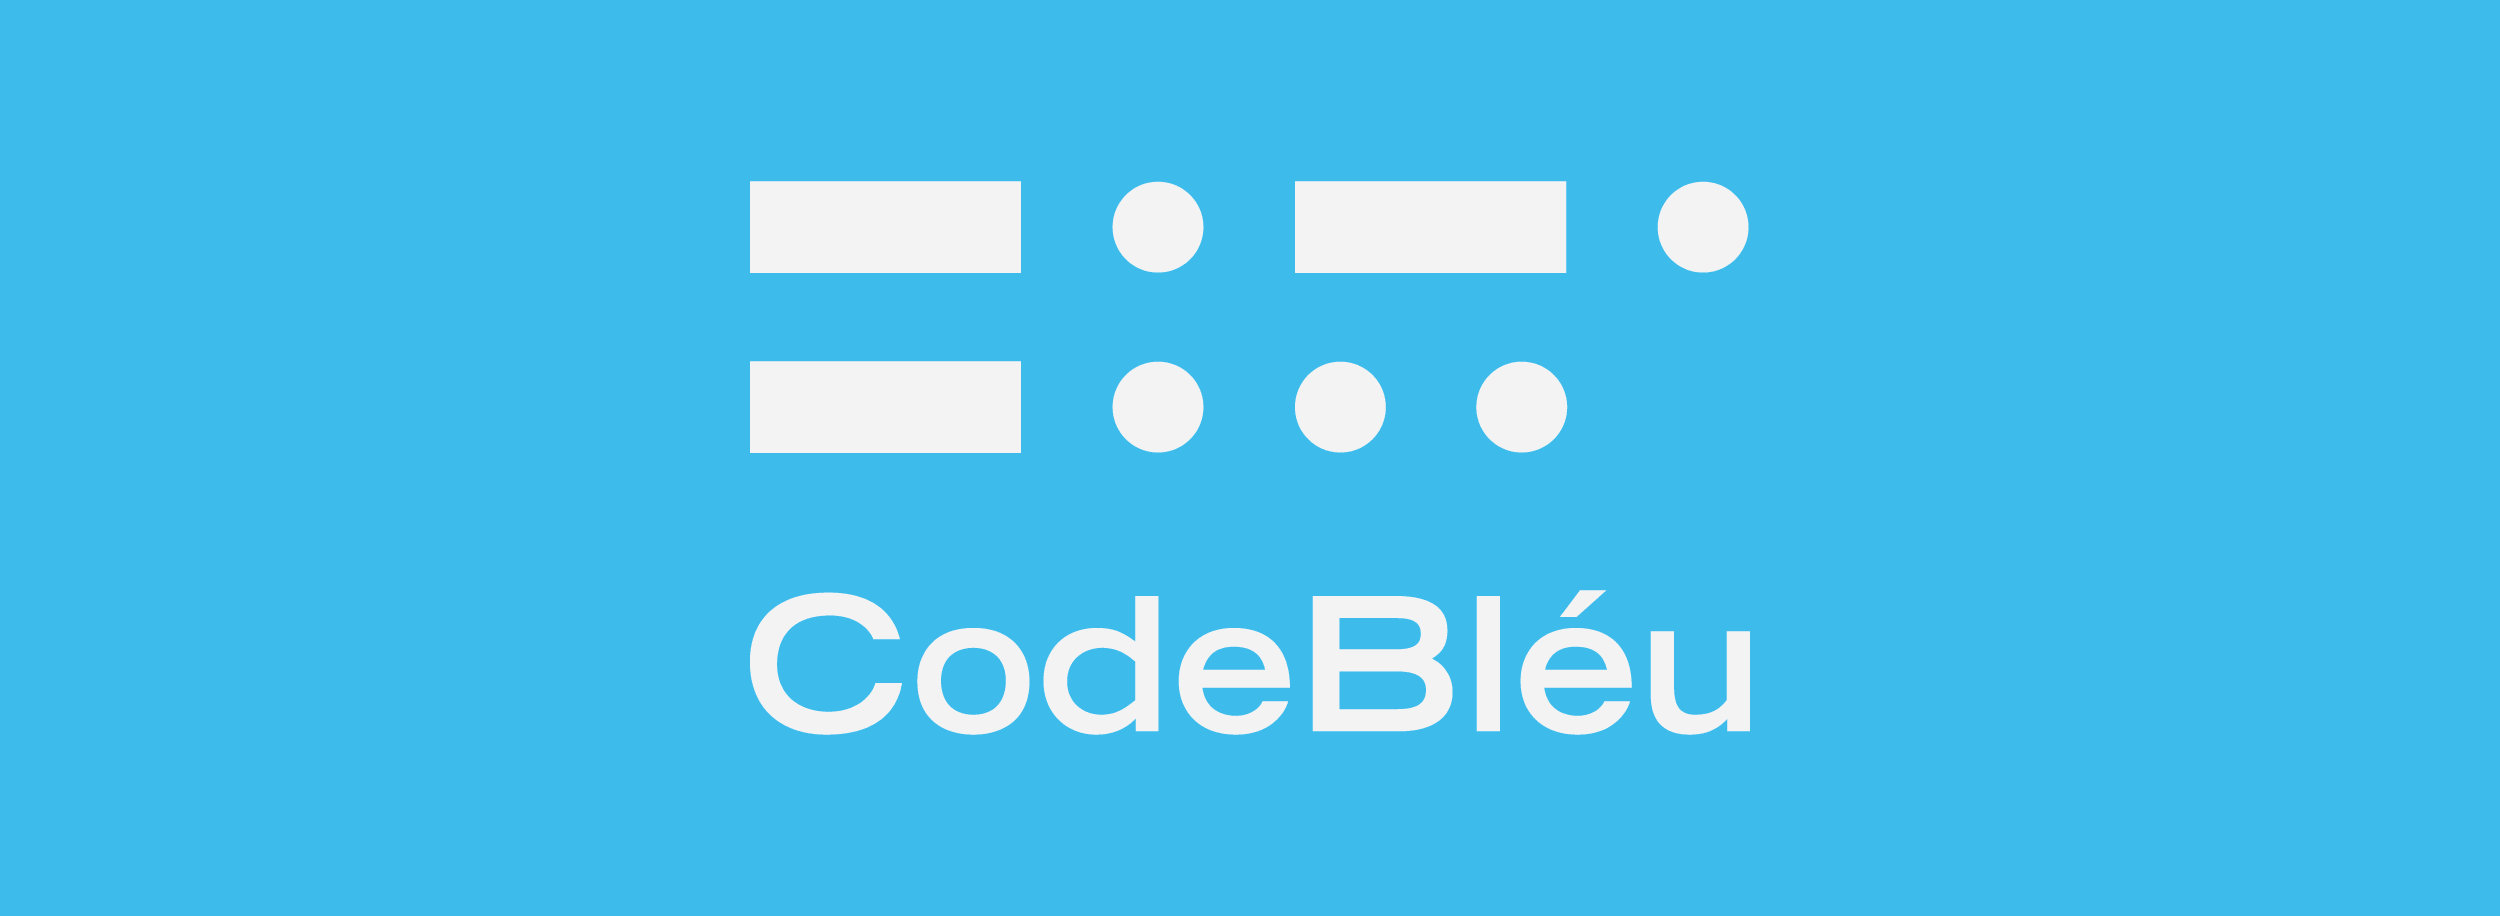 Morse code is a very powerful way to communicate information visually. We've used that language to create a minimalist and modern geometric logo